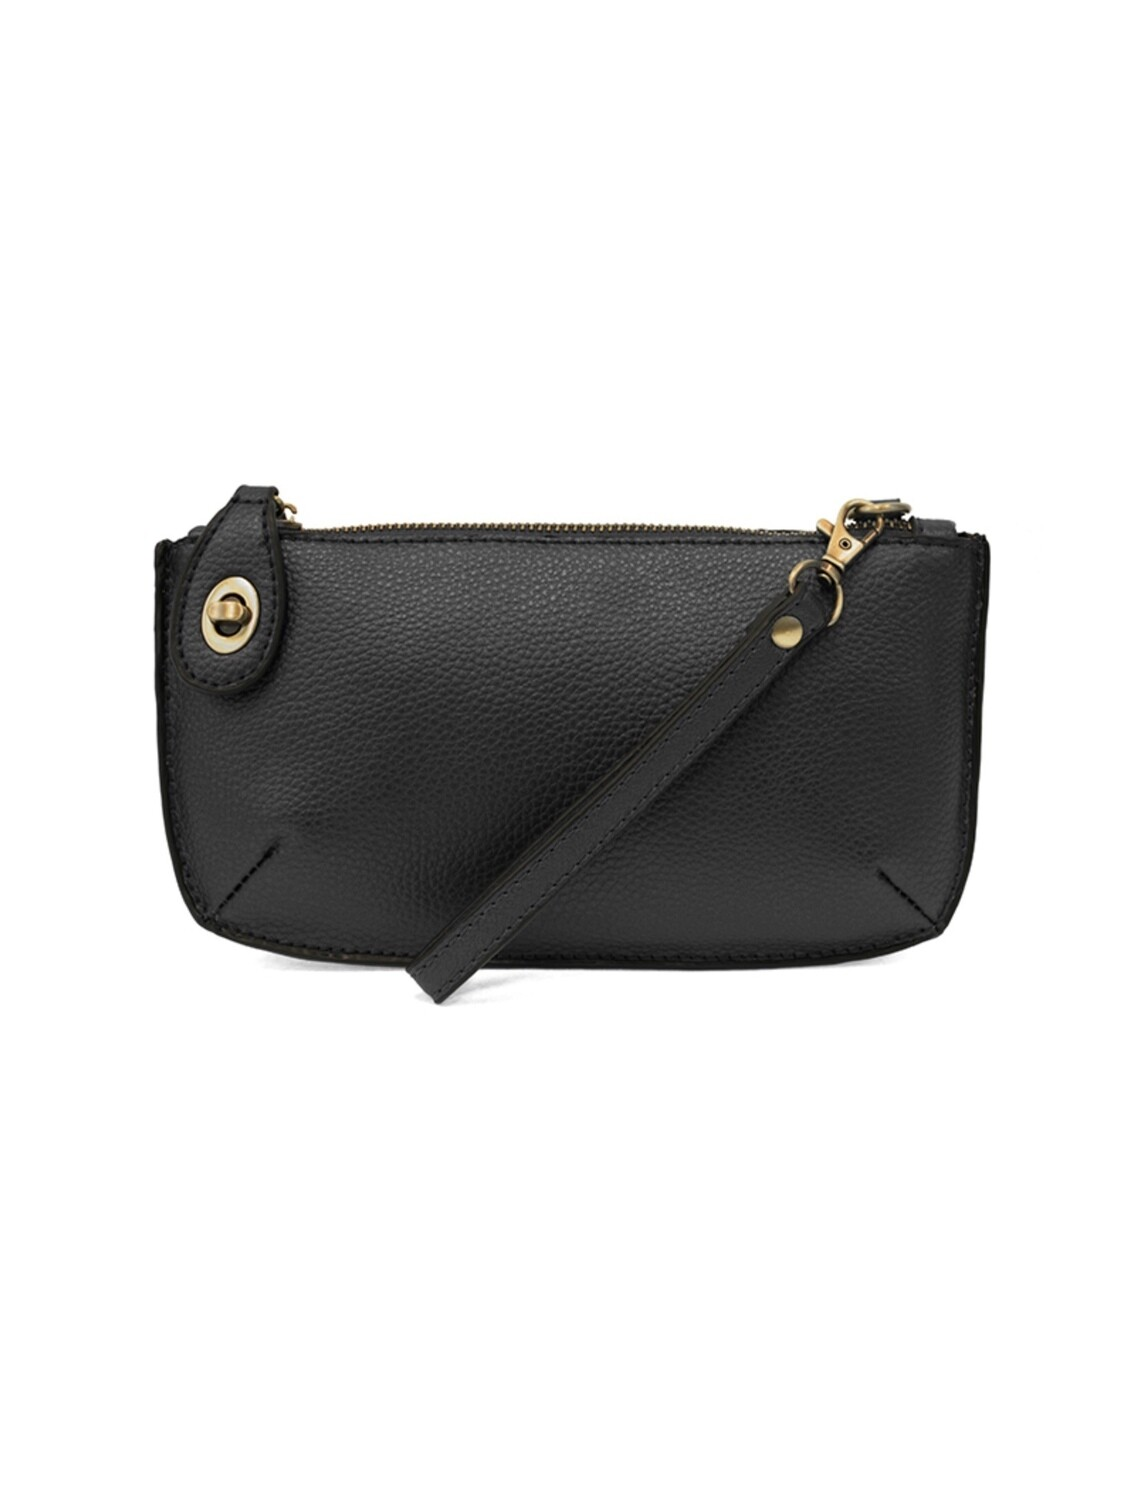 Mini Crossbody Wristlet Clutch Black JA8000-00